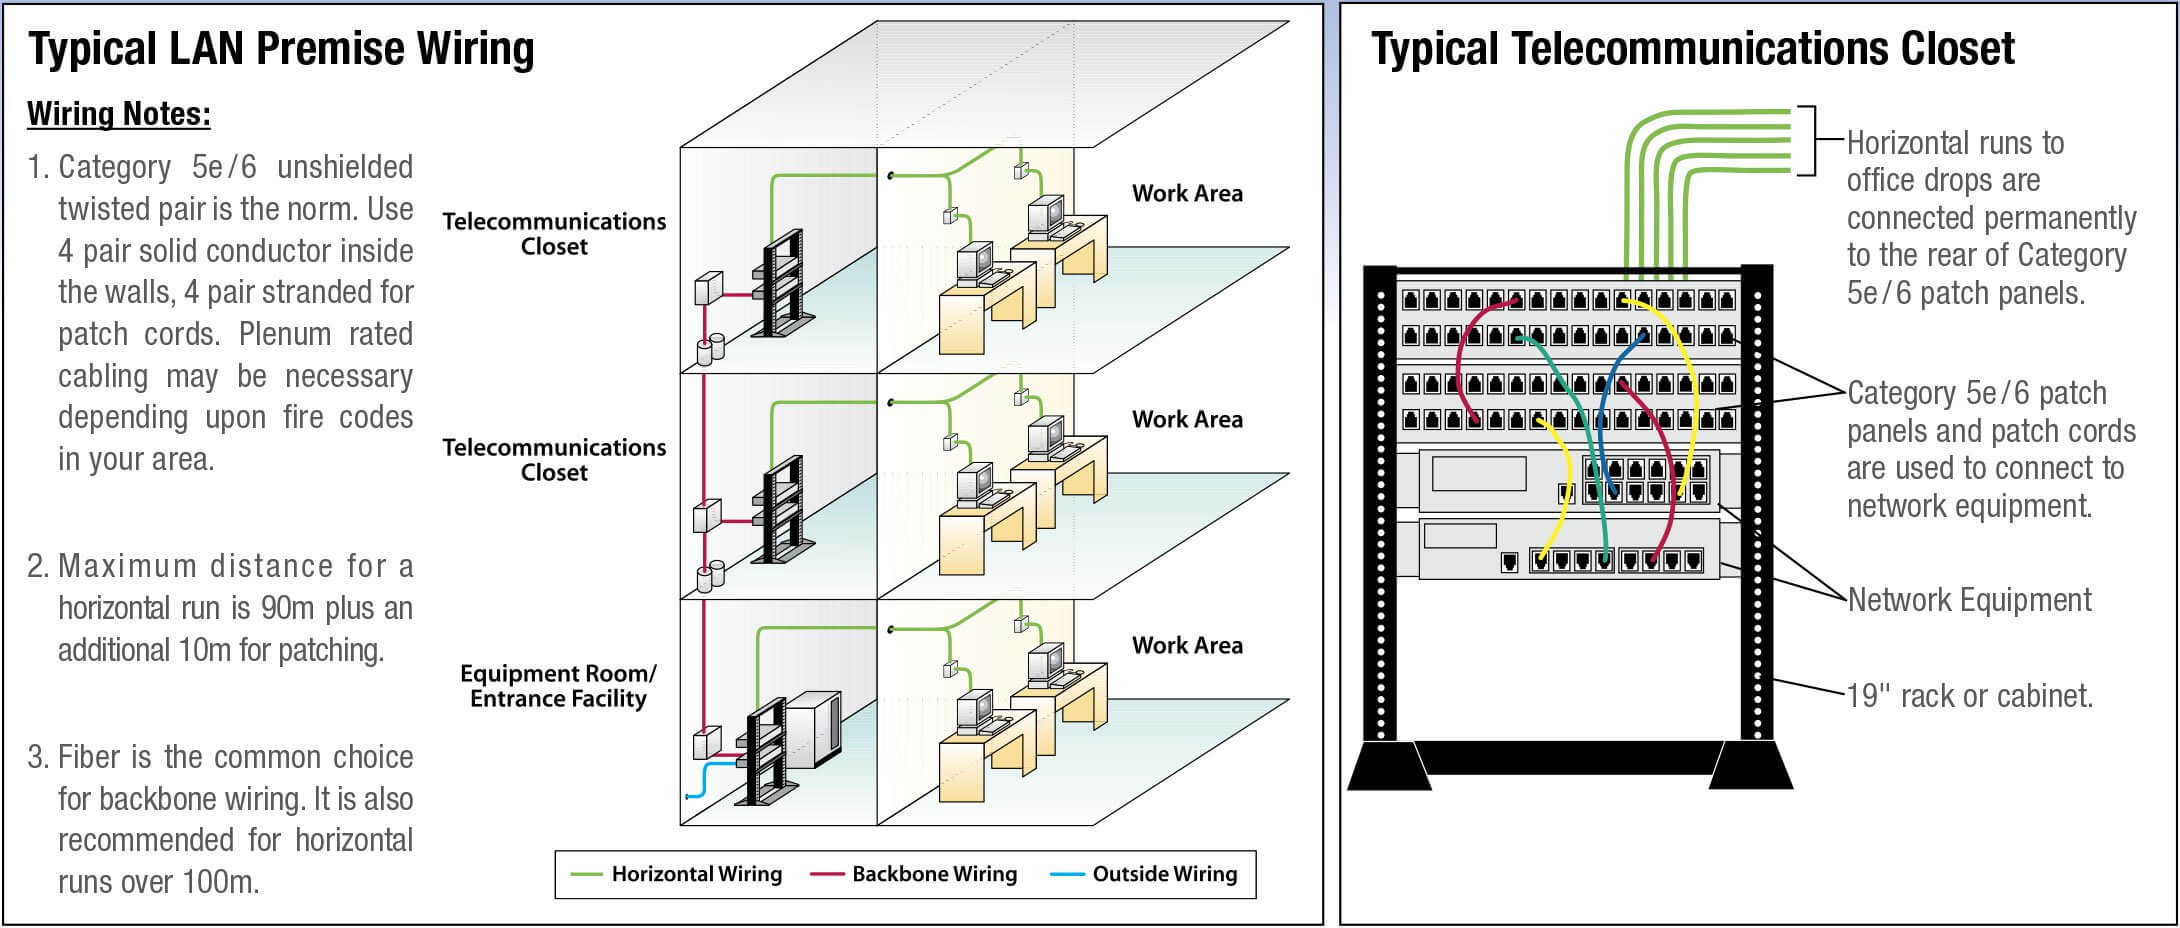 Cat 4 Wiring Diagram Wiring Diagram Schemes Telephone Jack Wiring Color  Code Cat 5 4 Wiring Diagram